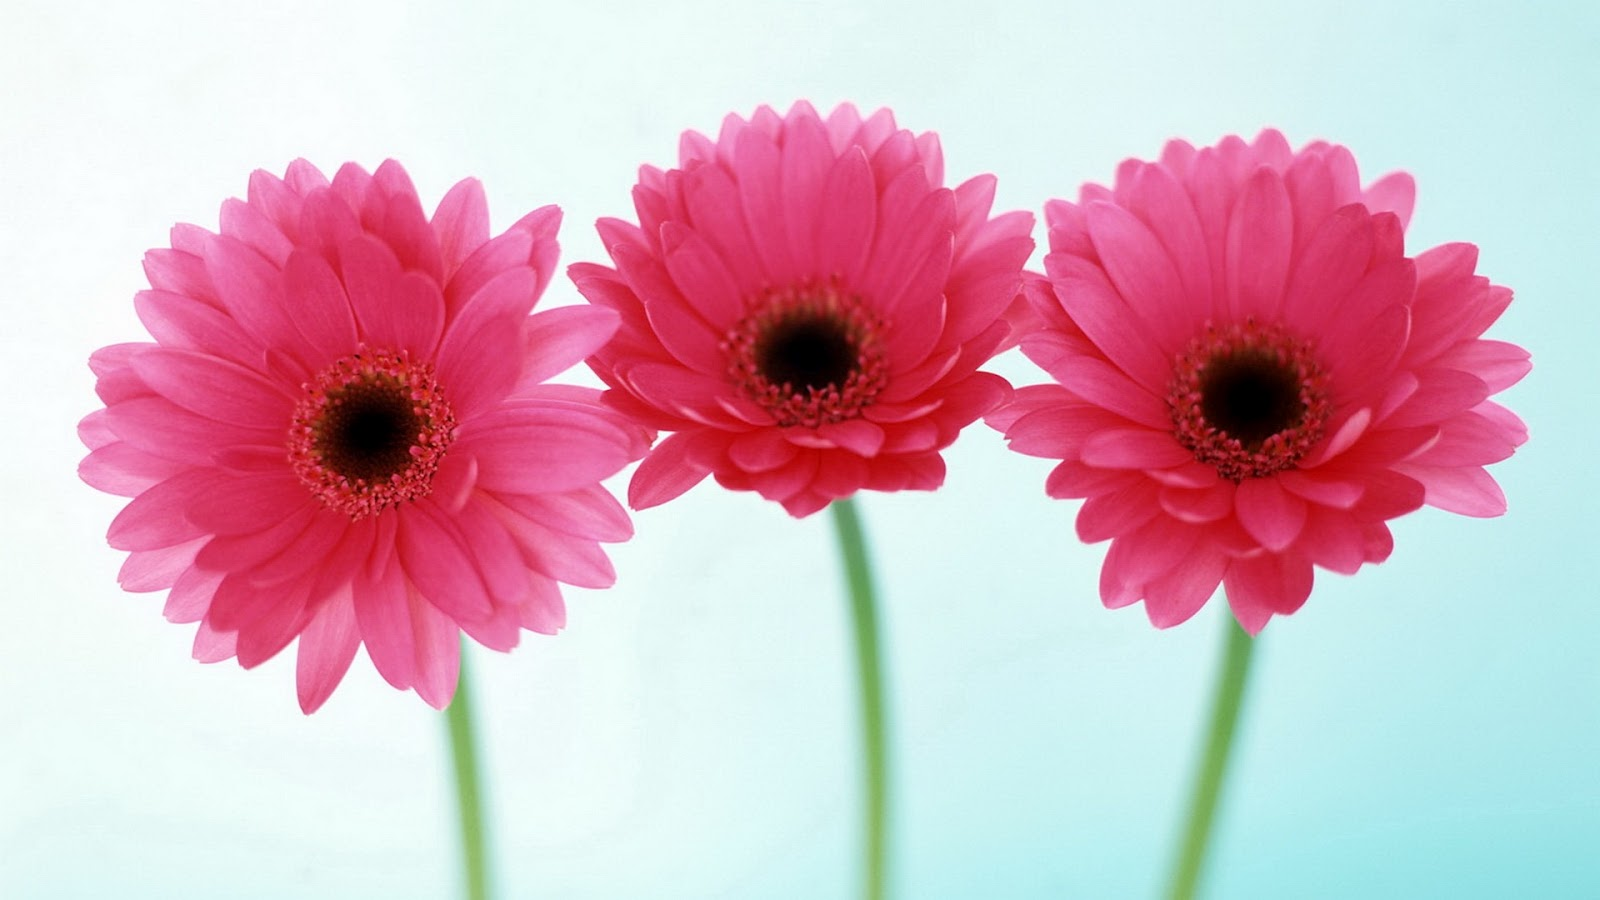 Flowers For Flower Lovers HD Wallpapers